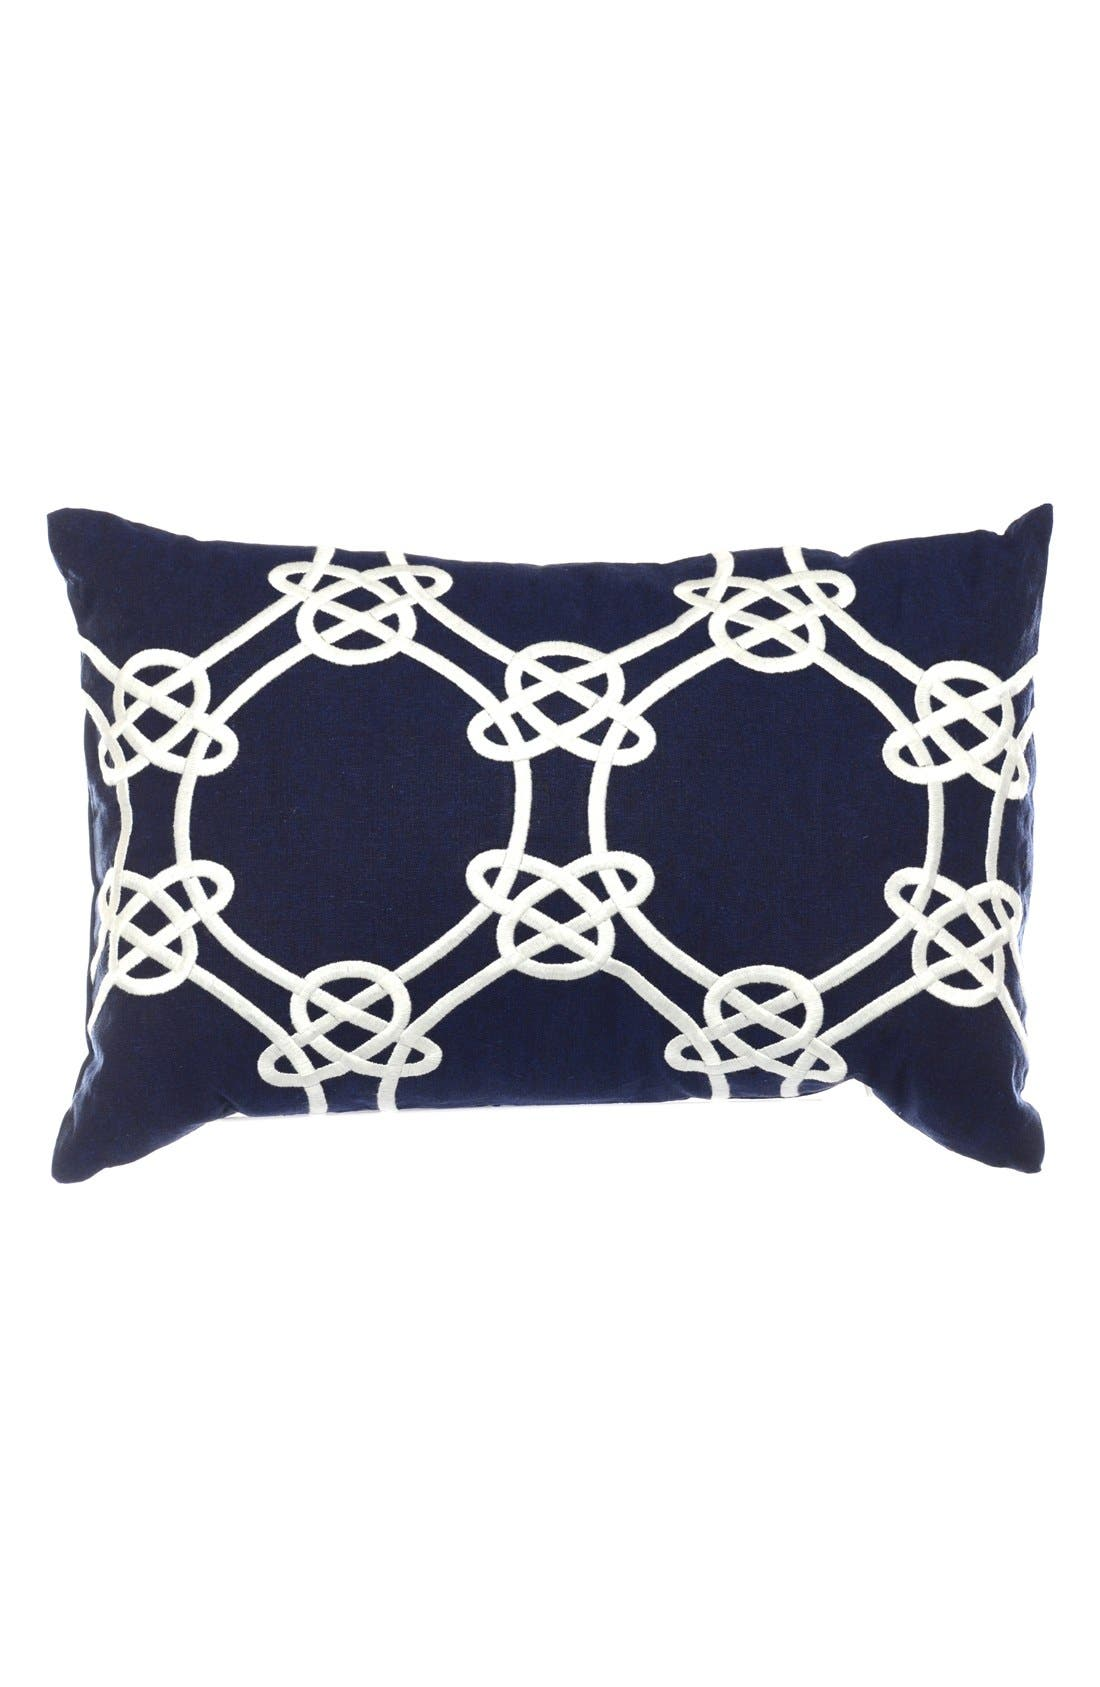 Alternate Image 1 Selected - Nautica 'Clemsford - Breakfast' Embroidered Linen & Cotton Accent Pillow